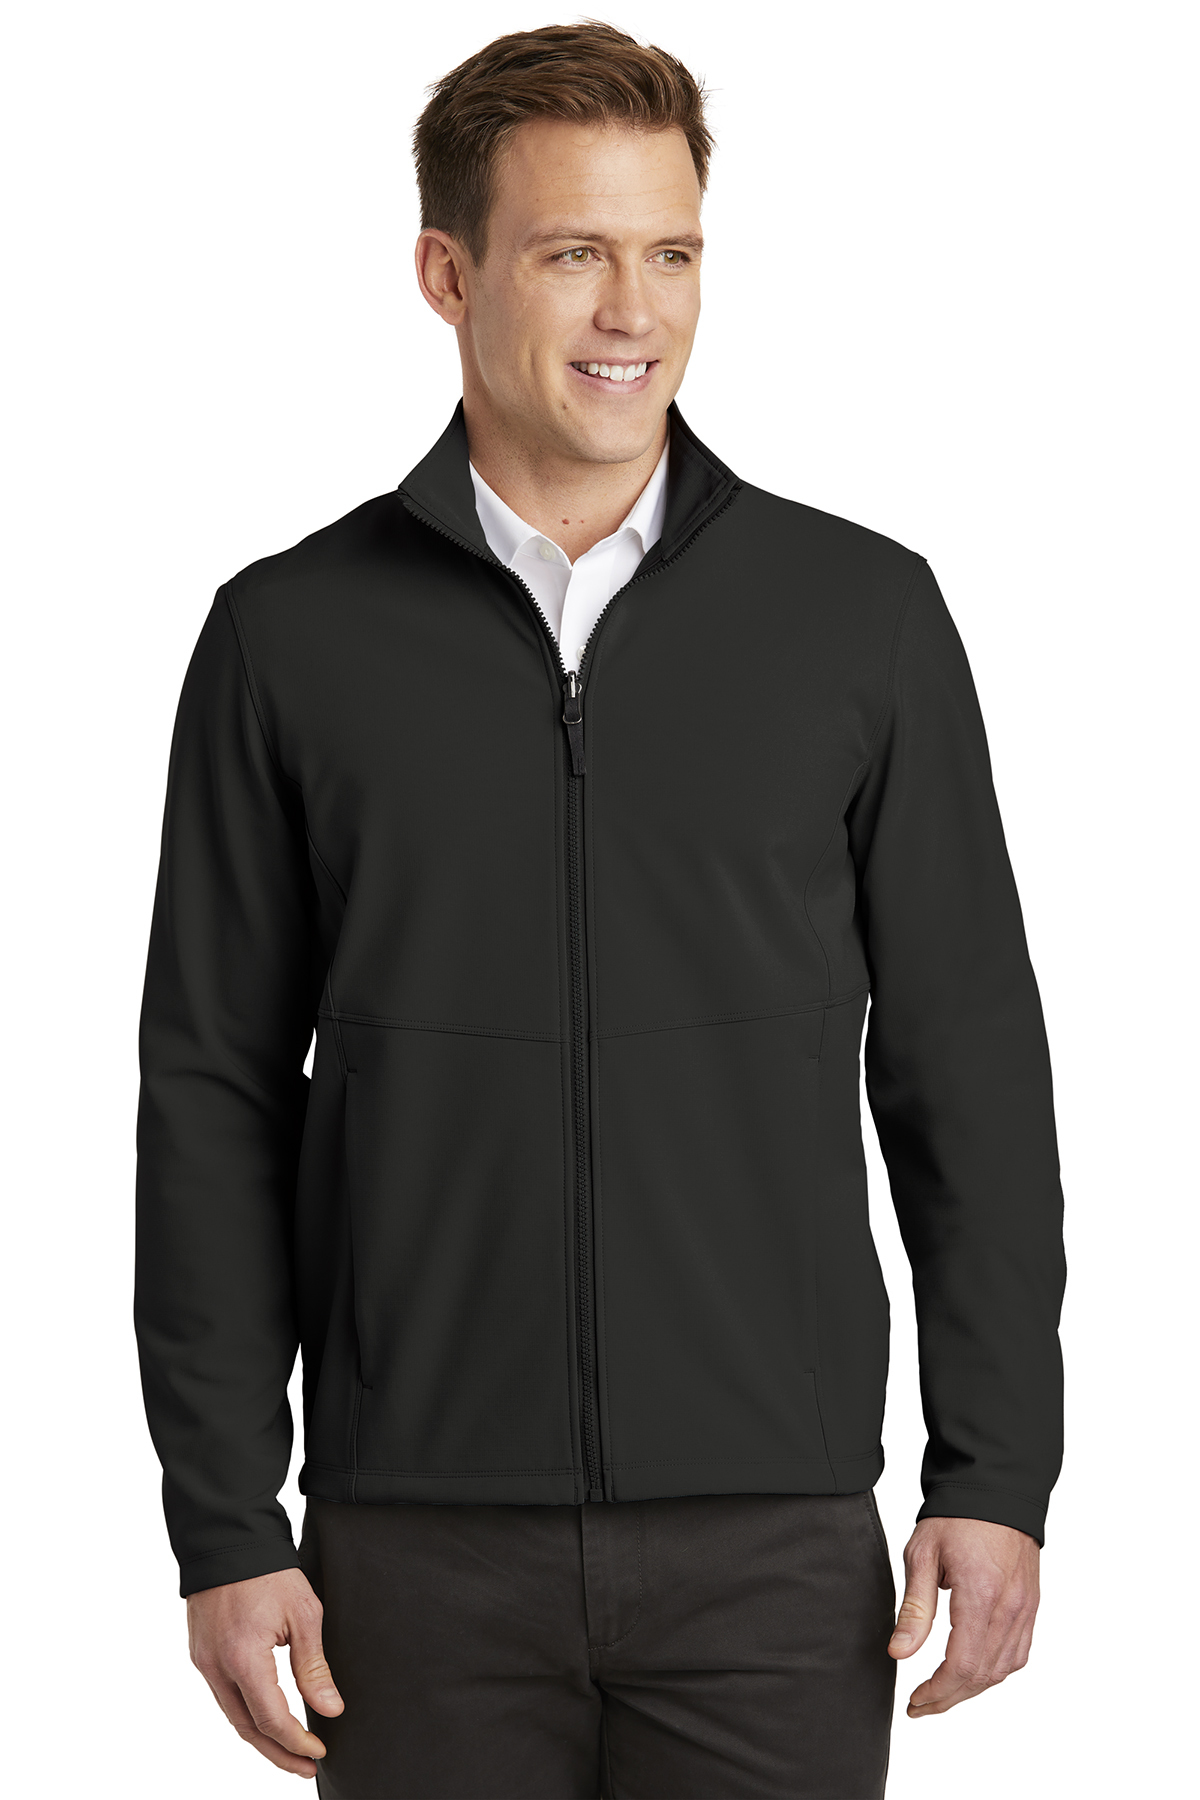 Port Authority J901 - Men's Collective Soft Shell Jacket